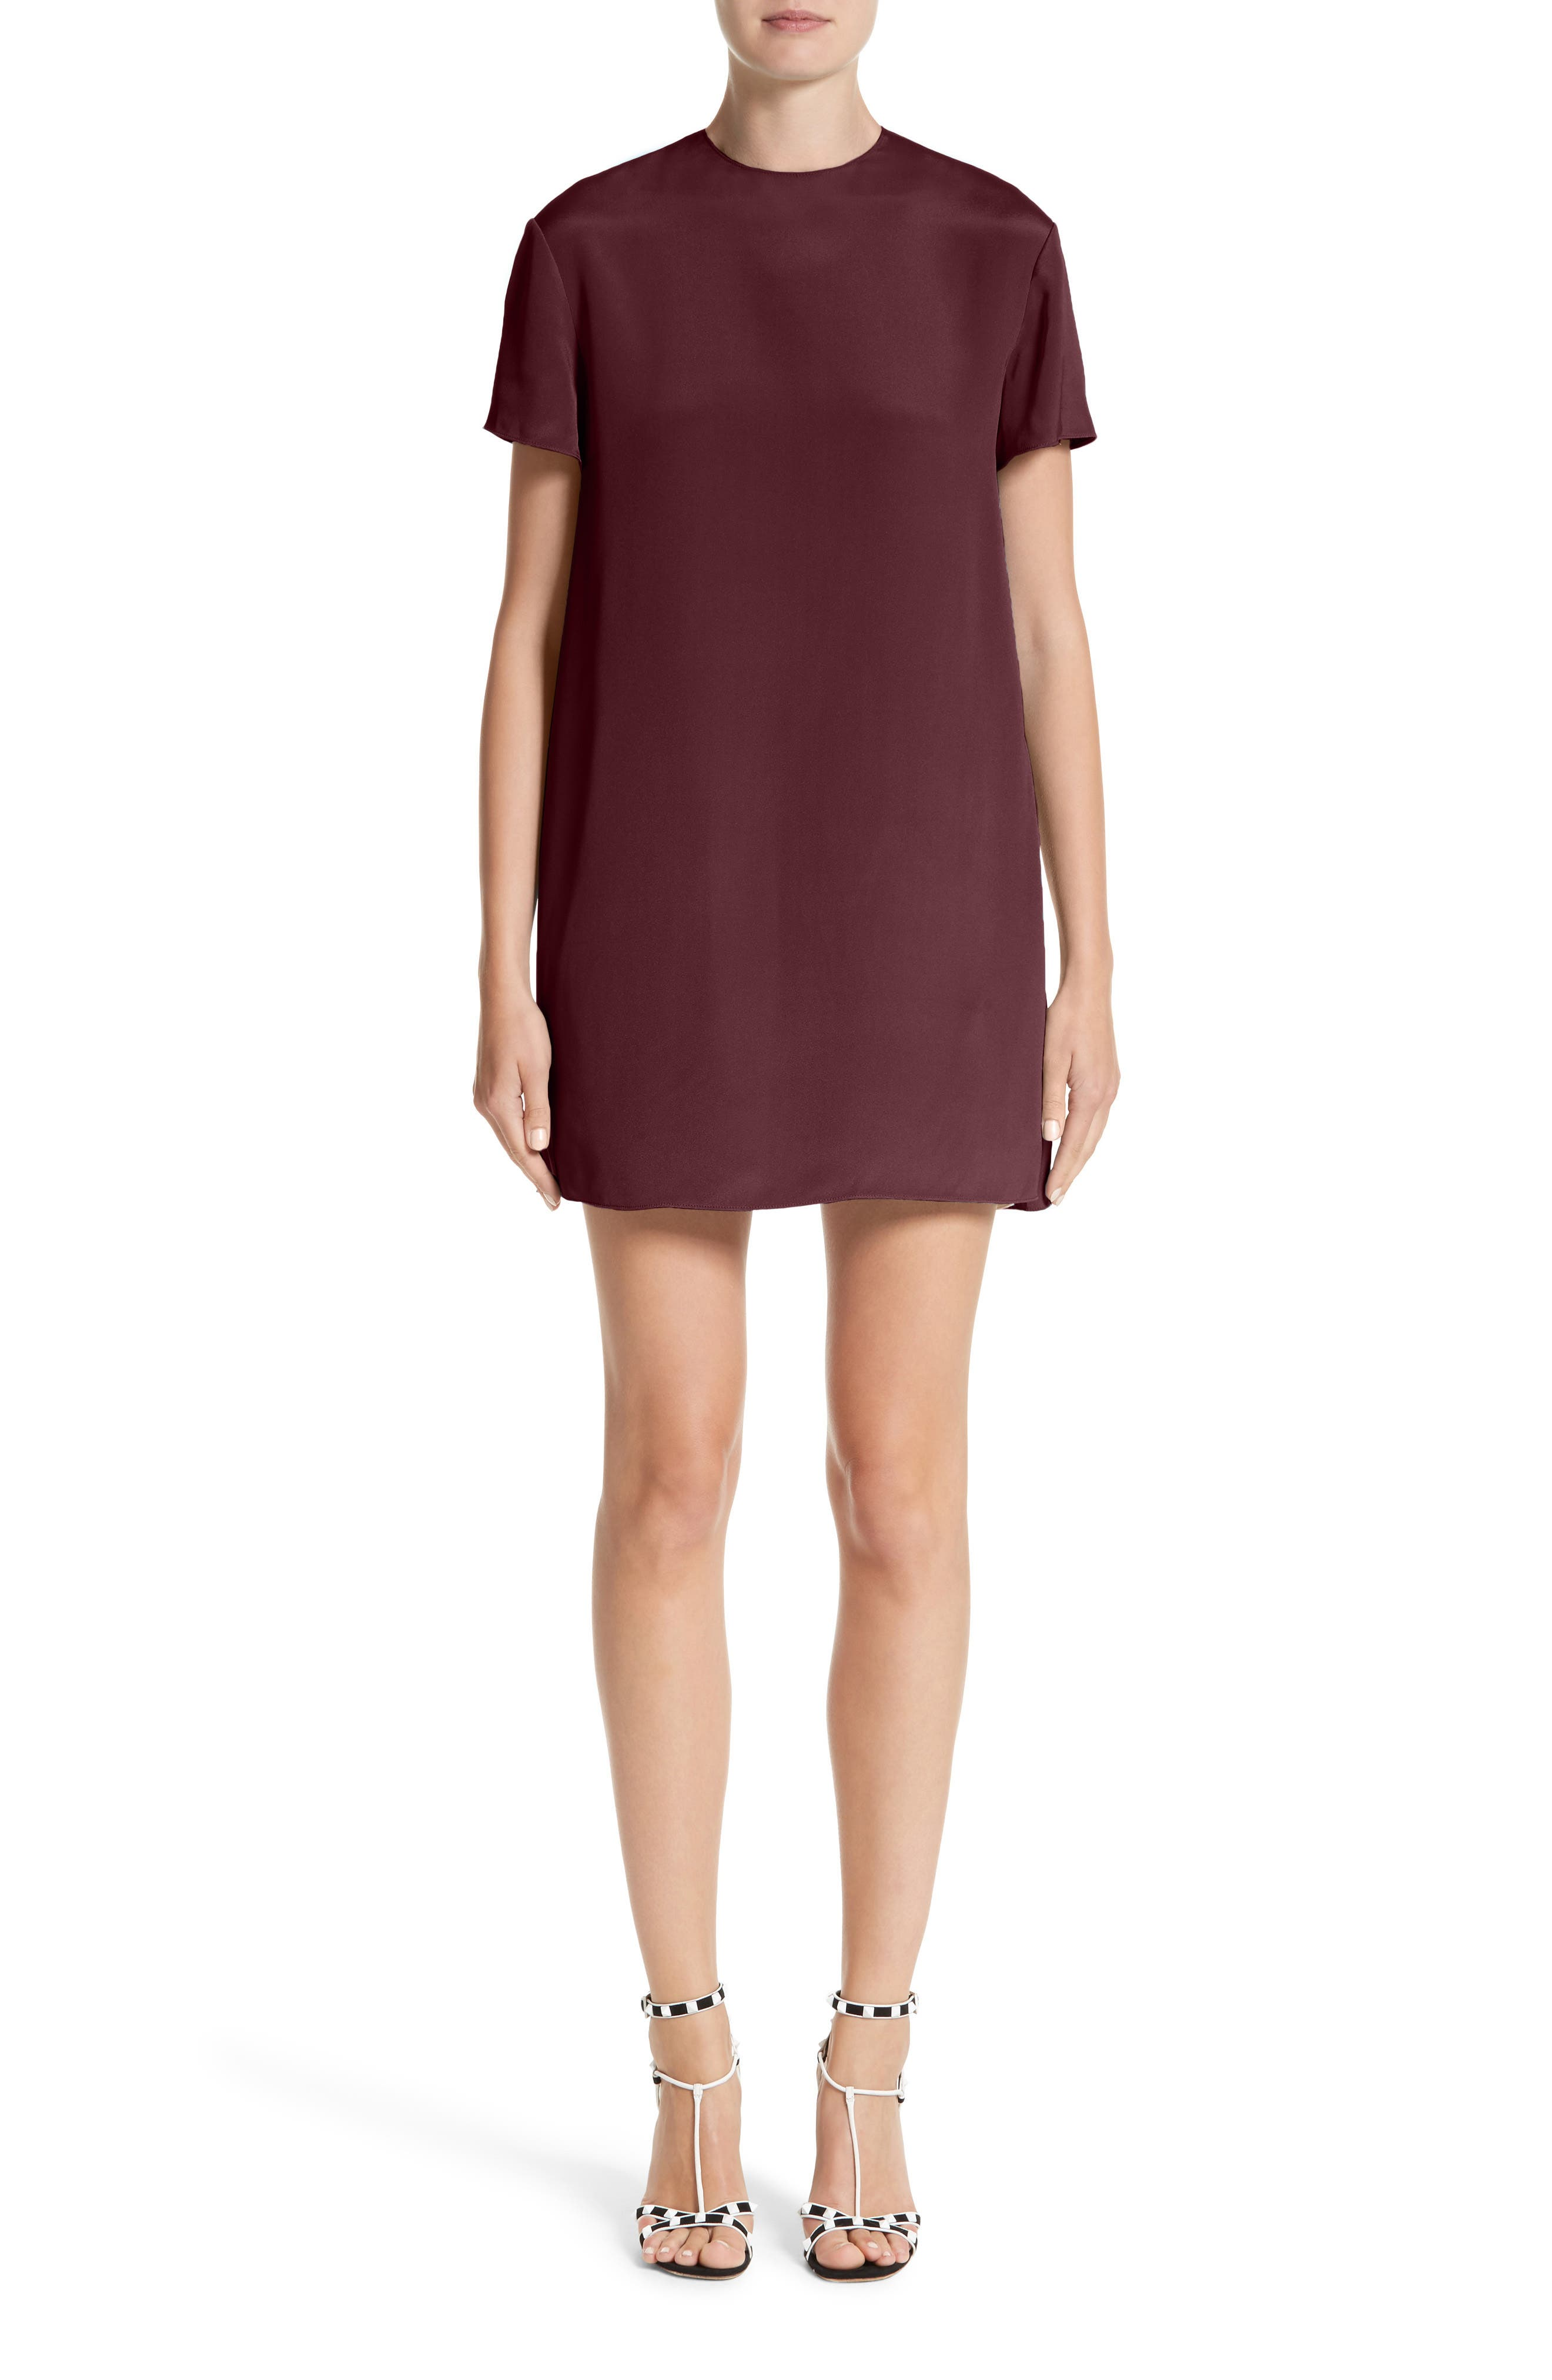 Silk Shift Dress,                             Main thumbnail 1, color,                             Burgundy / Ivory